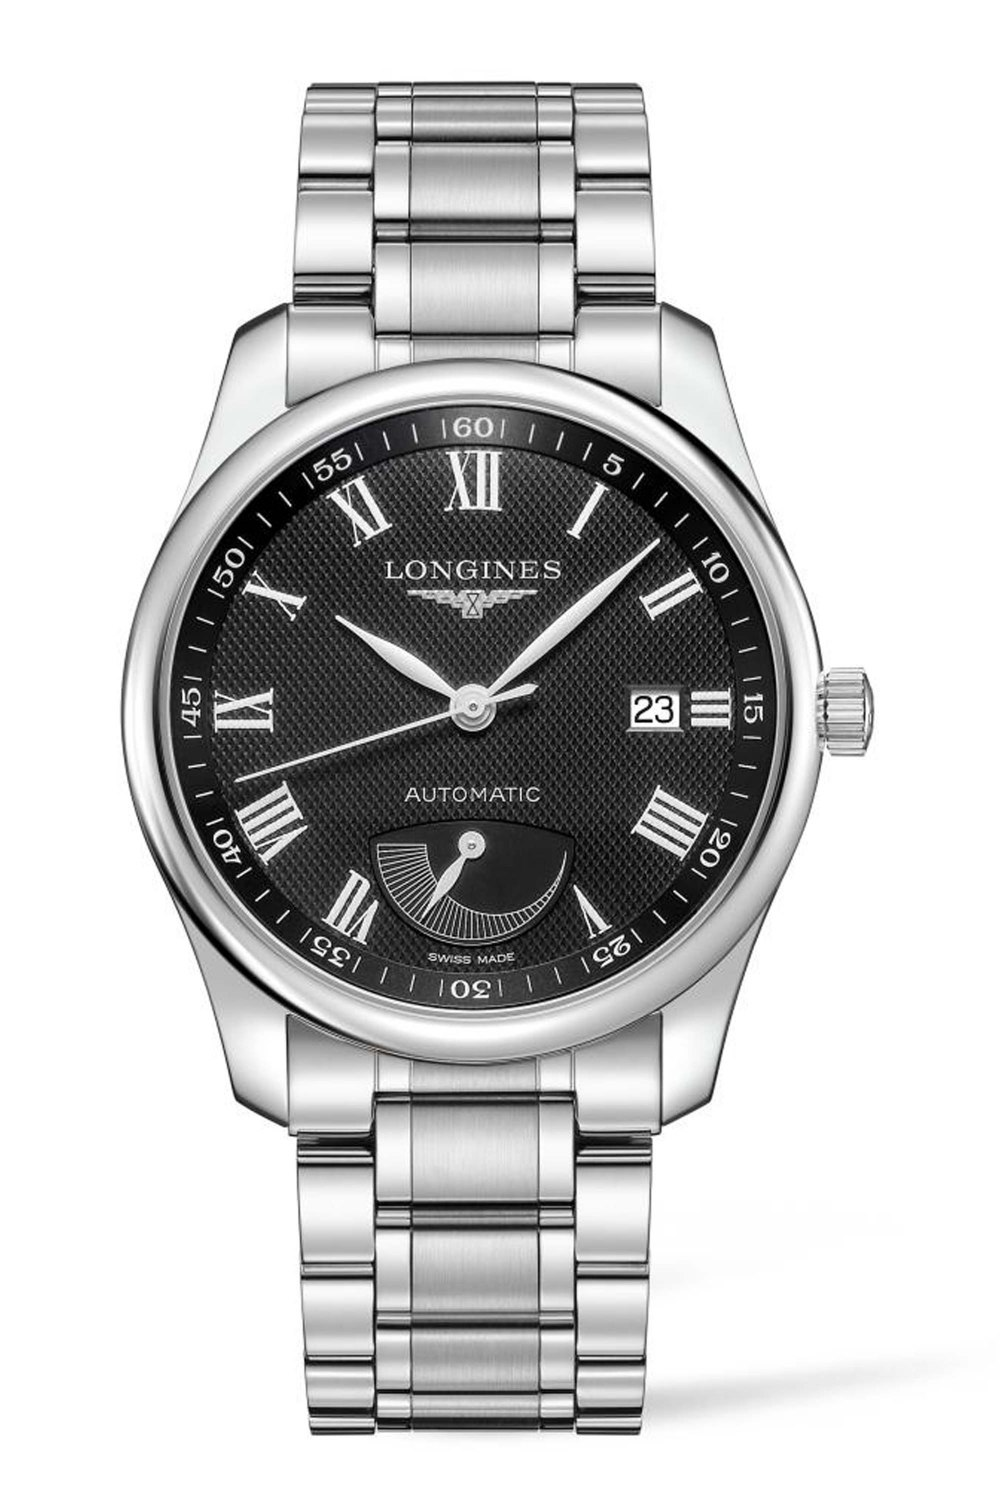 LONGINES The Longines Master Collection L2.908.4.51.6